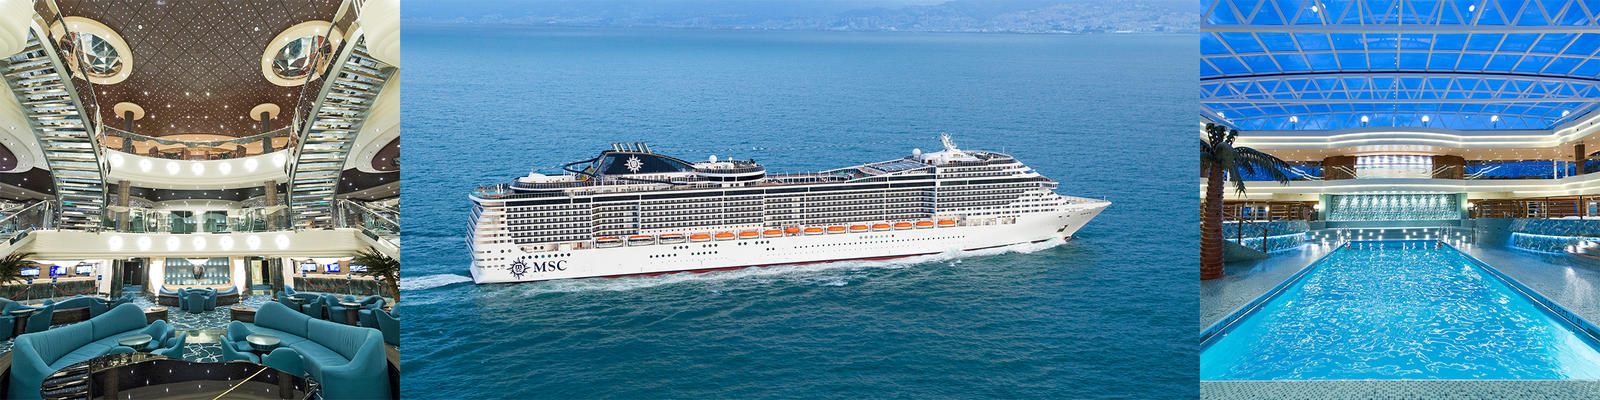 MSC Preziosa Cruise Ship Review Photos Departure Ports On